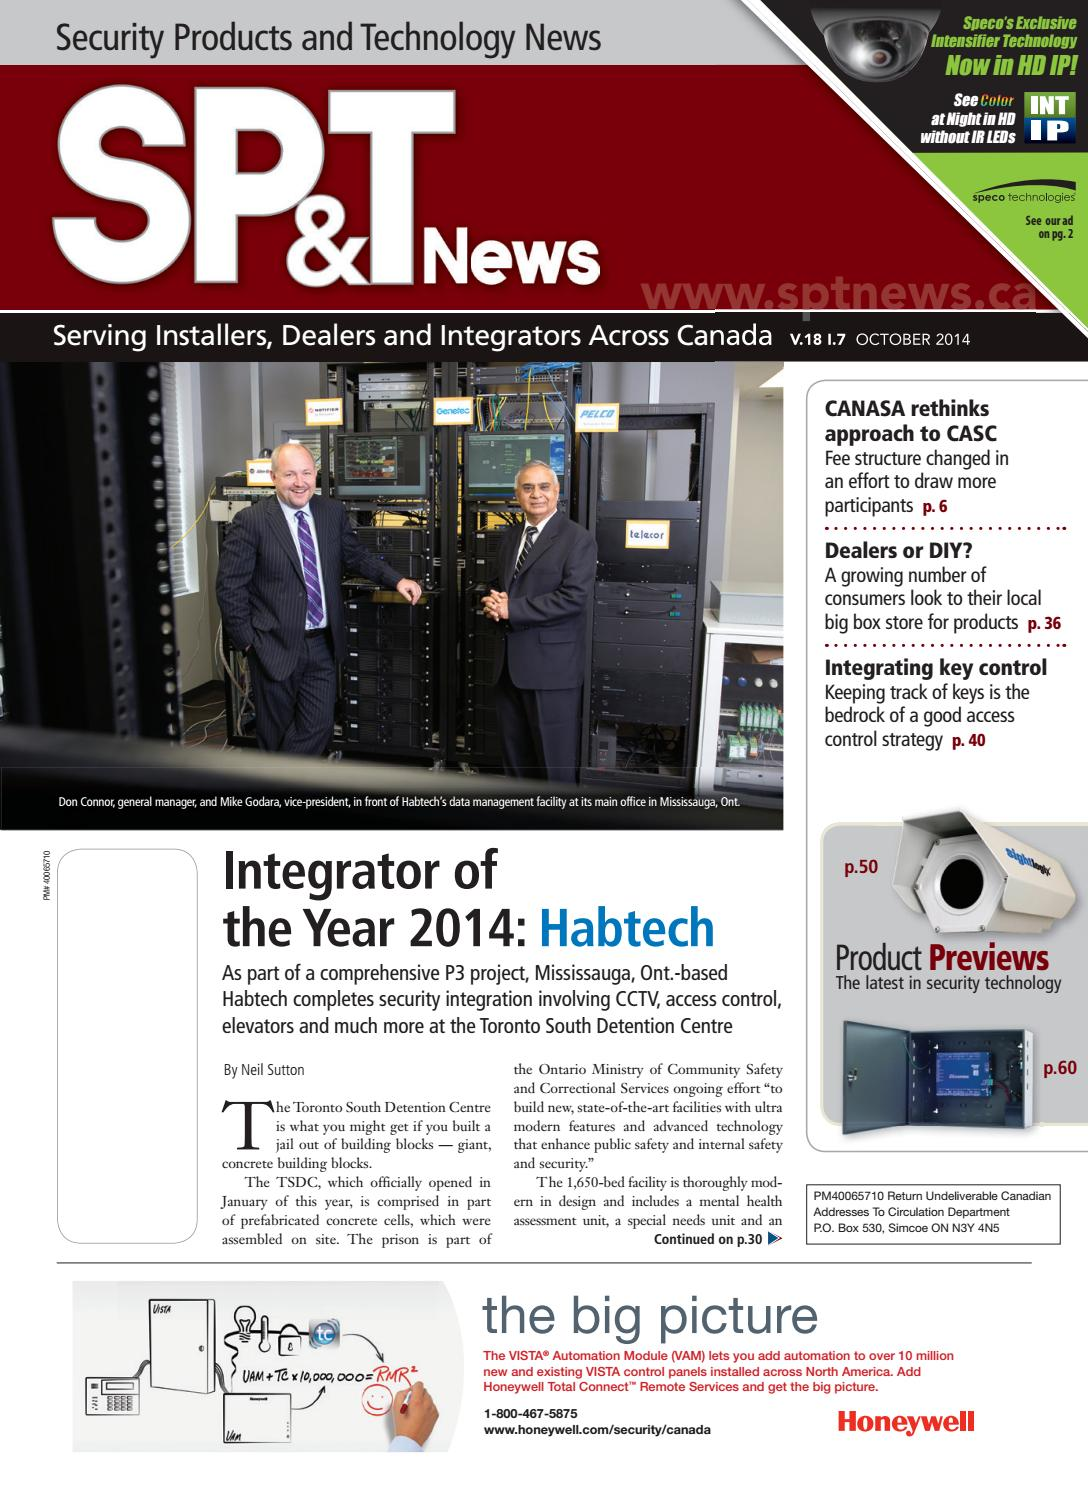 Securtity Products and Technology News October 2014 by Annex